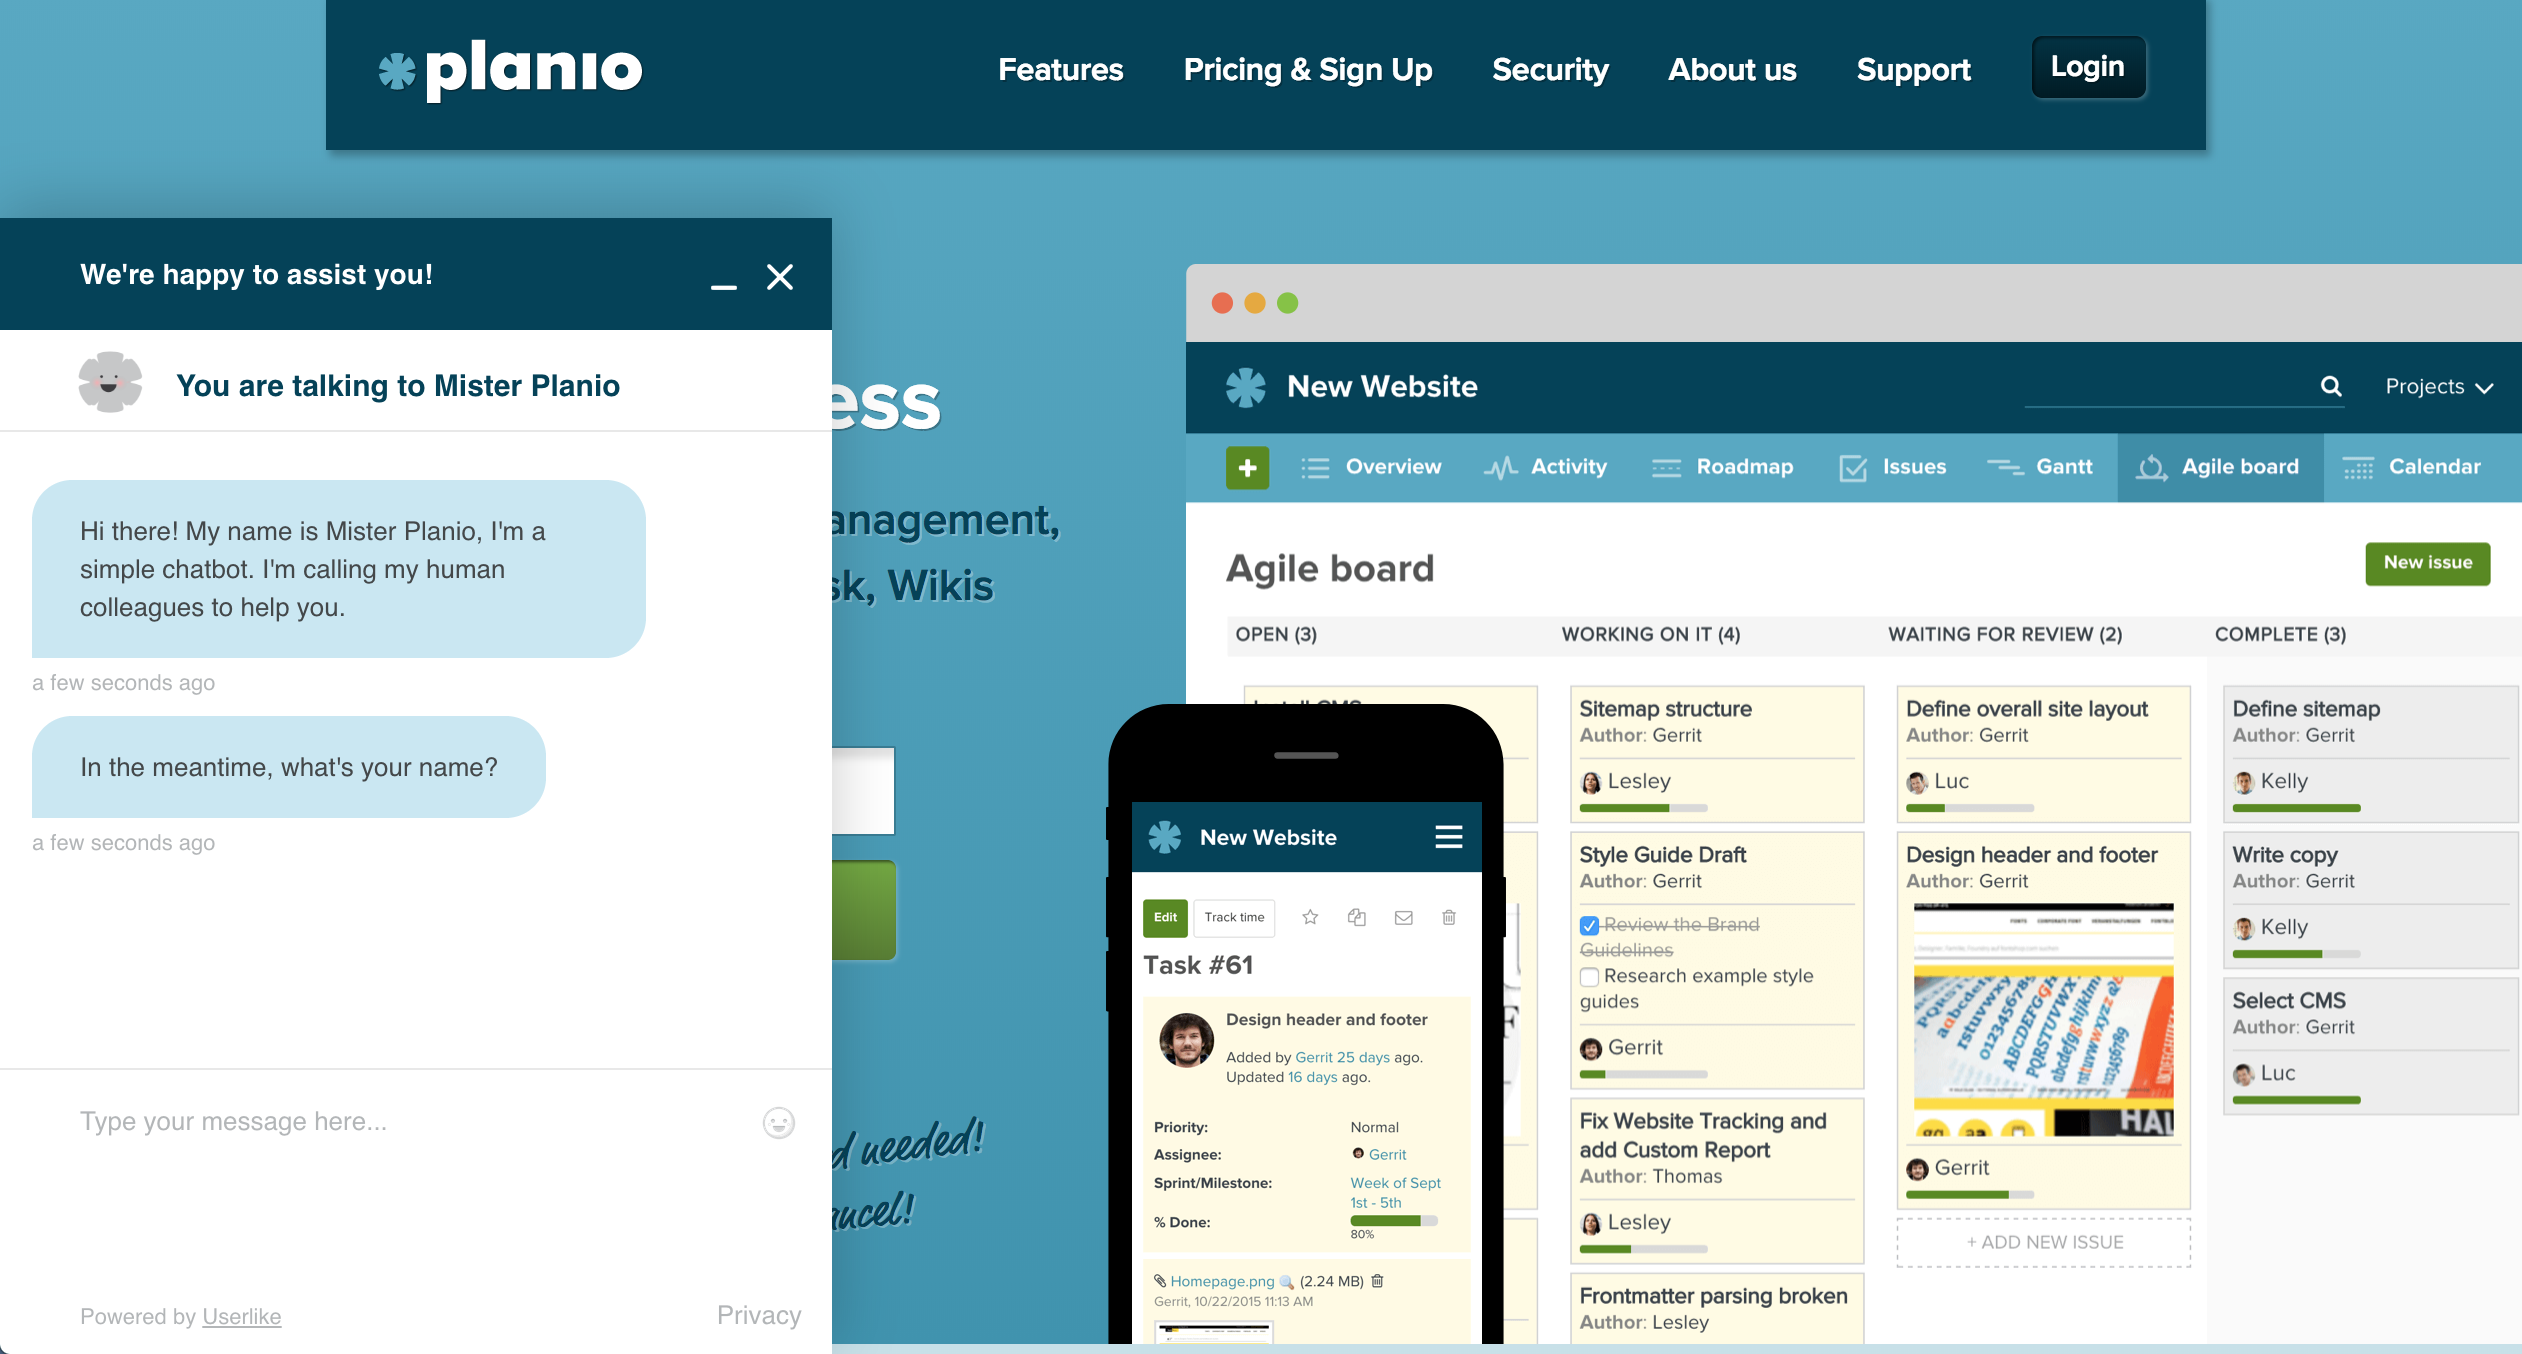 Screenshot of Plan.io's website with Mister Planio